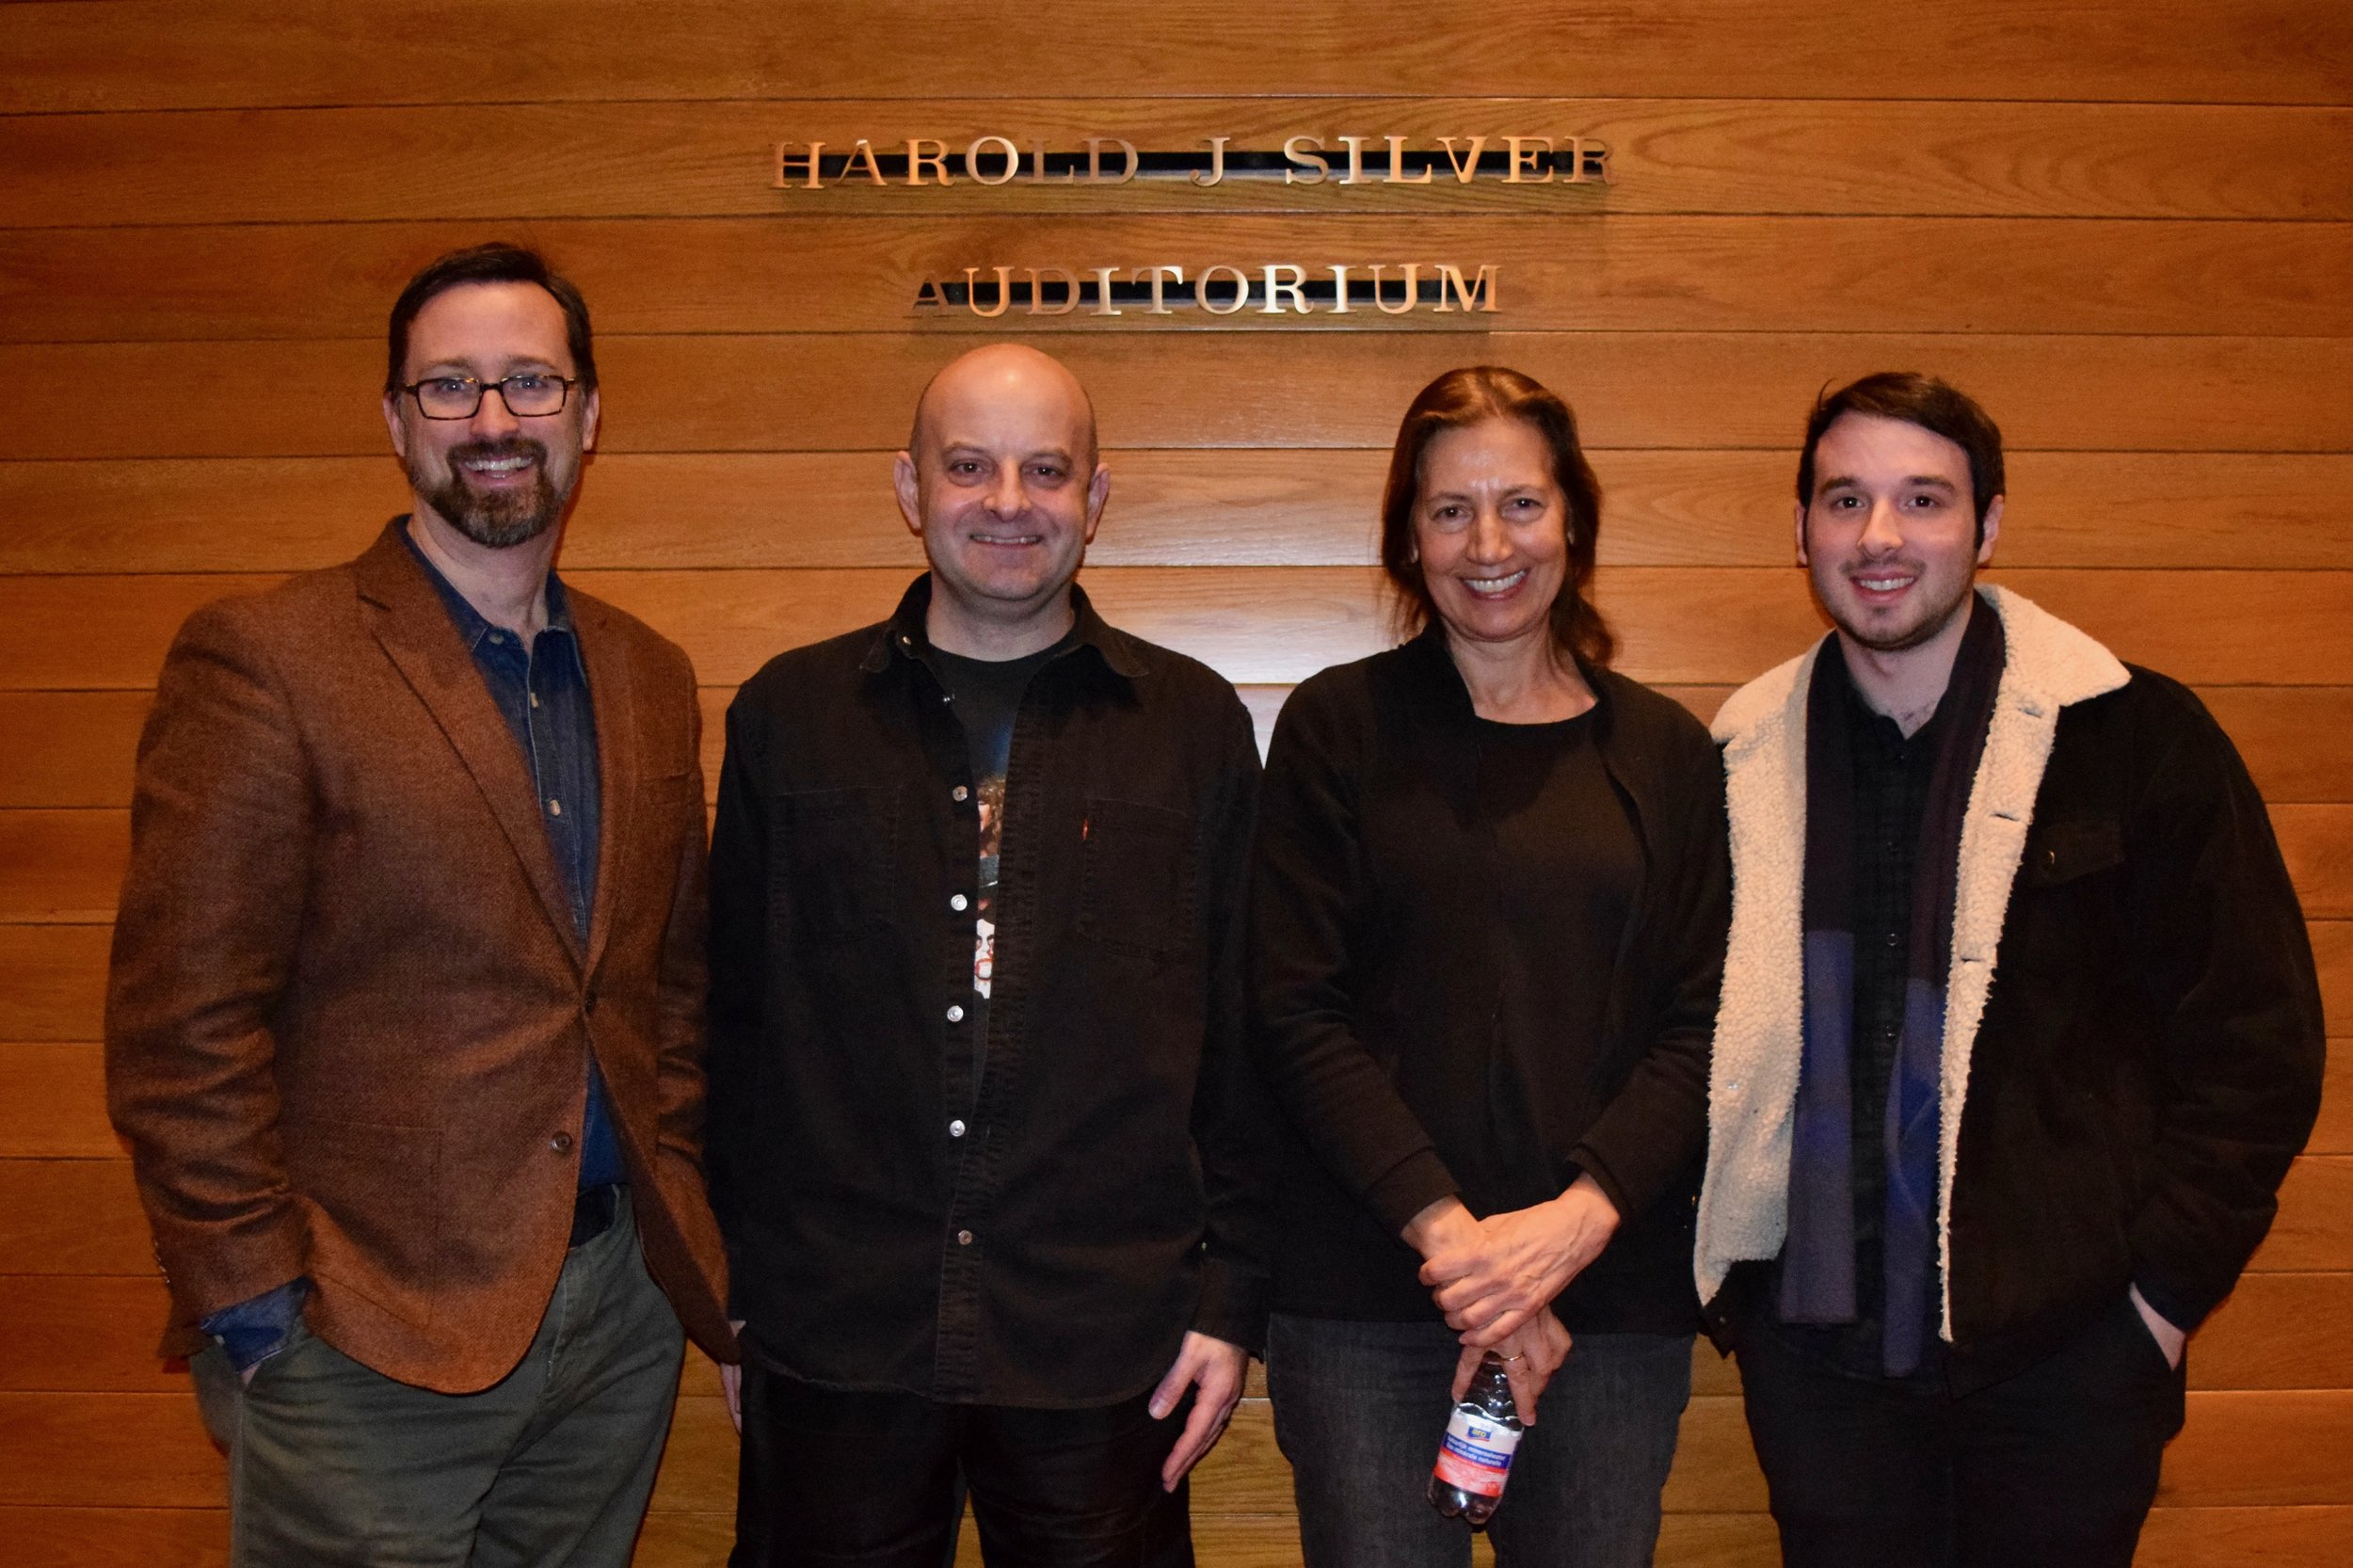 (L–R): Head of School Marshall Carter; Lucas, subject of Lost in the Bewilderness; Alexandra Anthony, filmmaker of Lost in the Bewilderness; Noah Bartel, filmmaker of The Young Armenian.